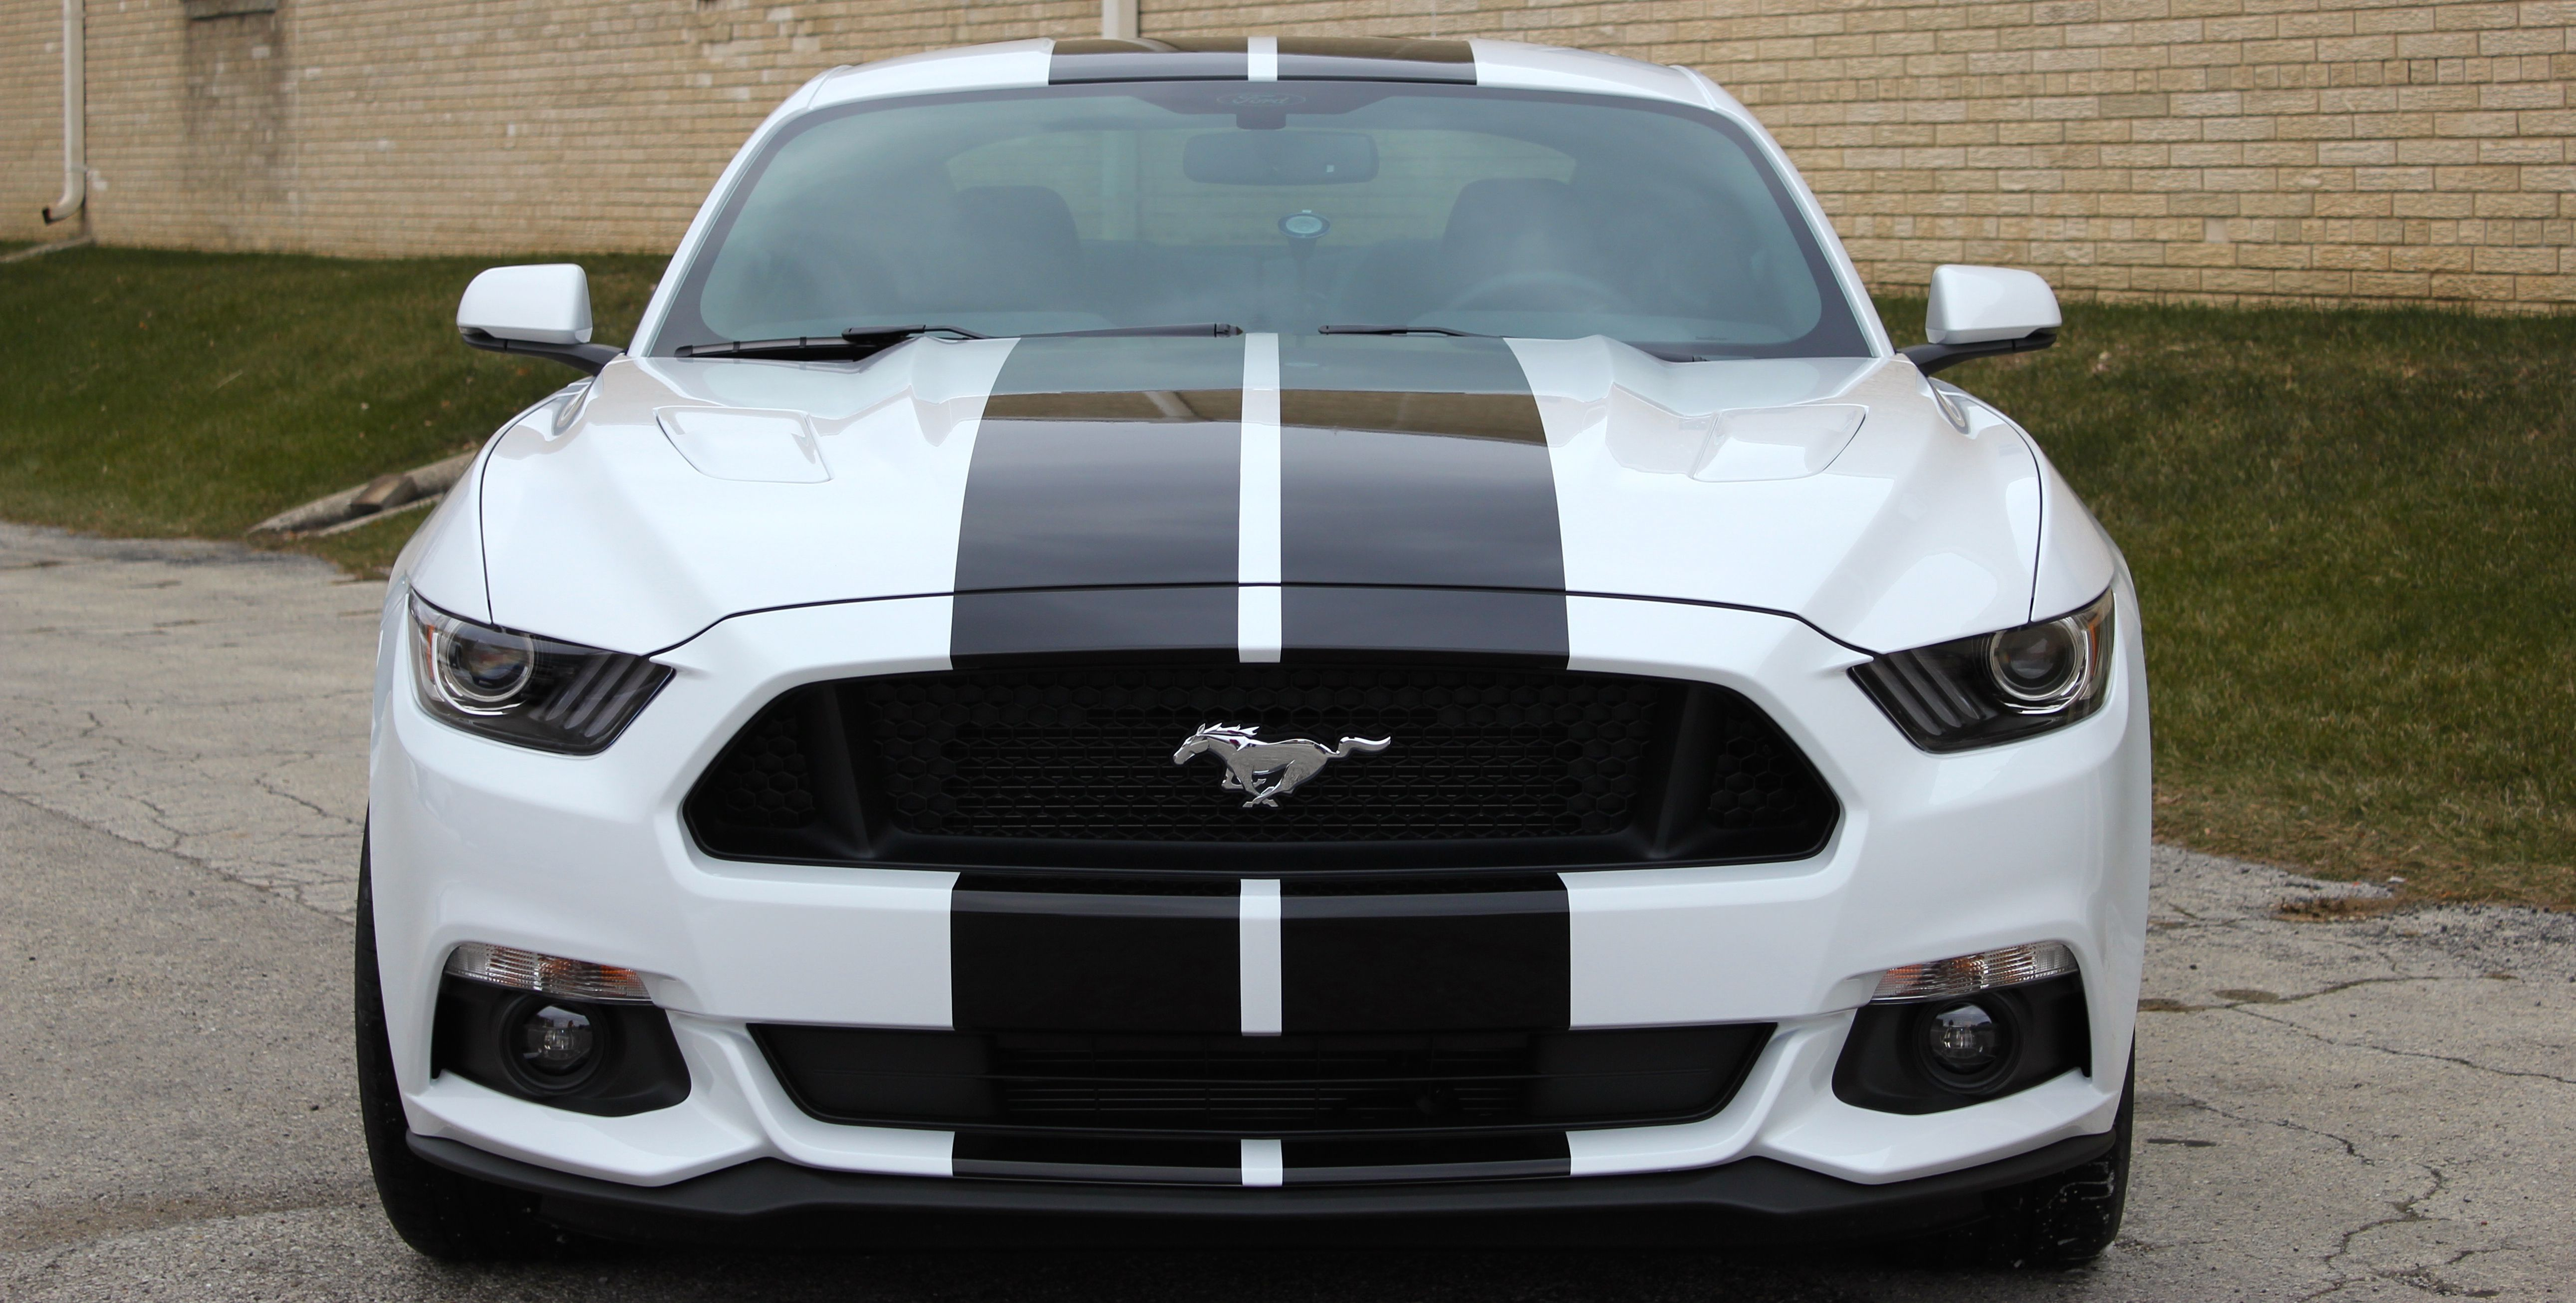 White Mustang Gt W Black Stripes Front View Mustang Ford Mustang Mustang Cars